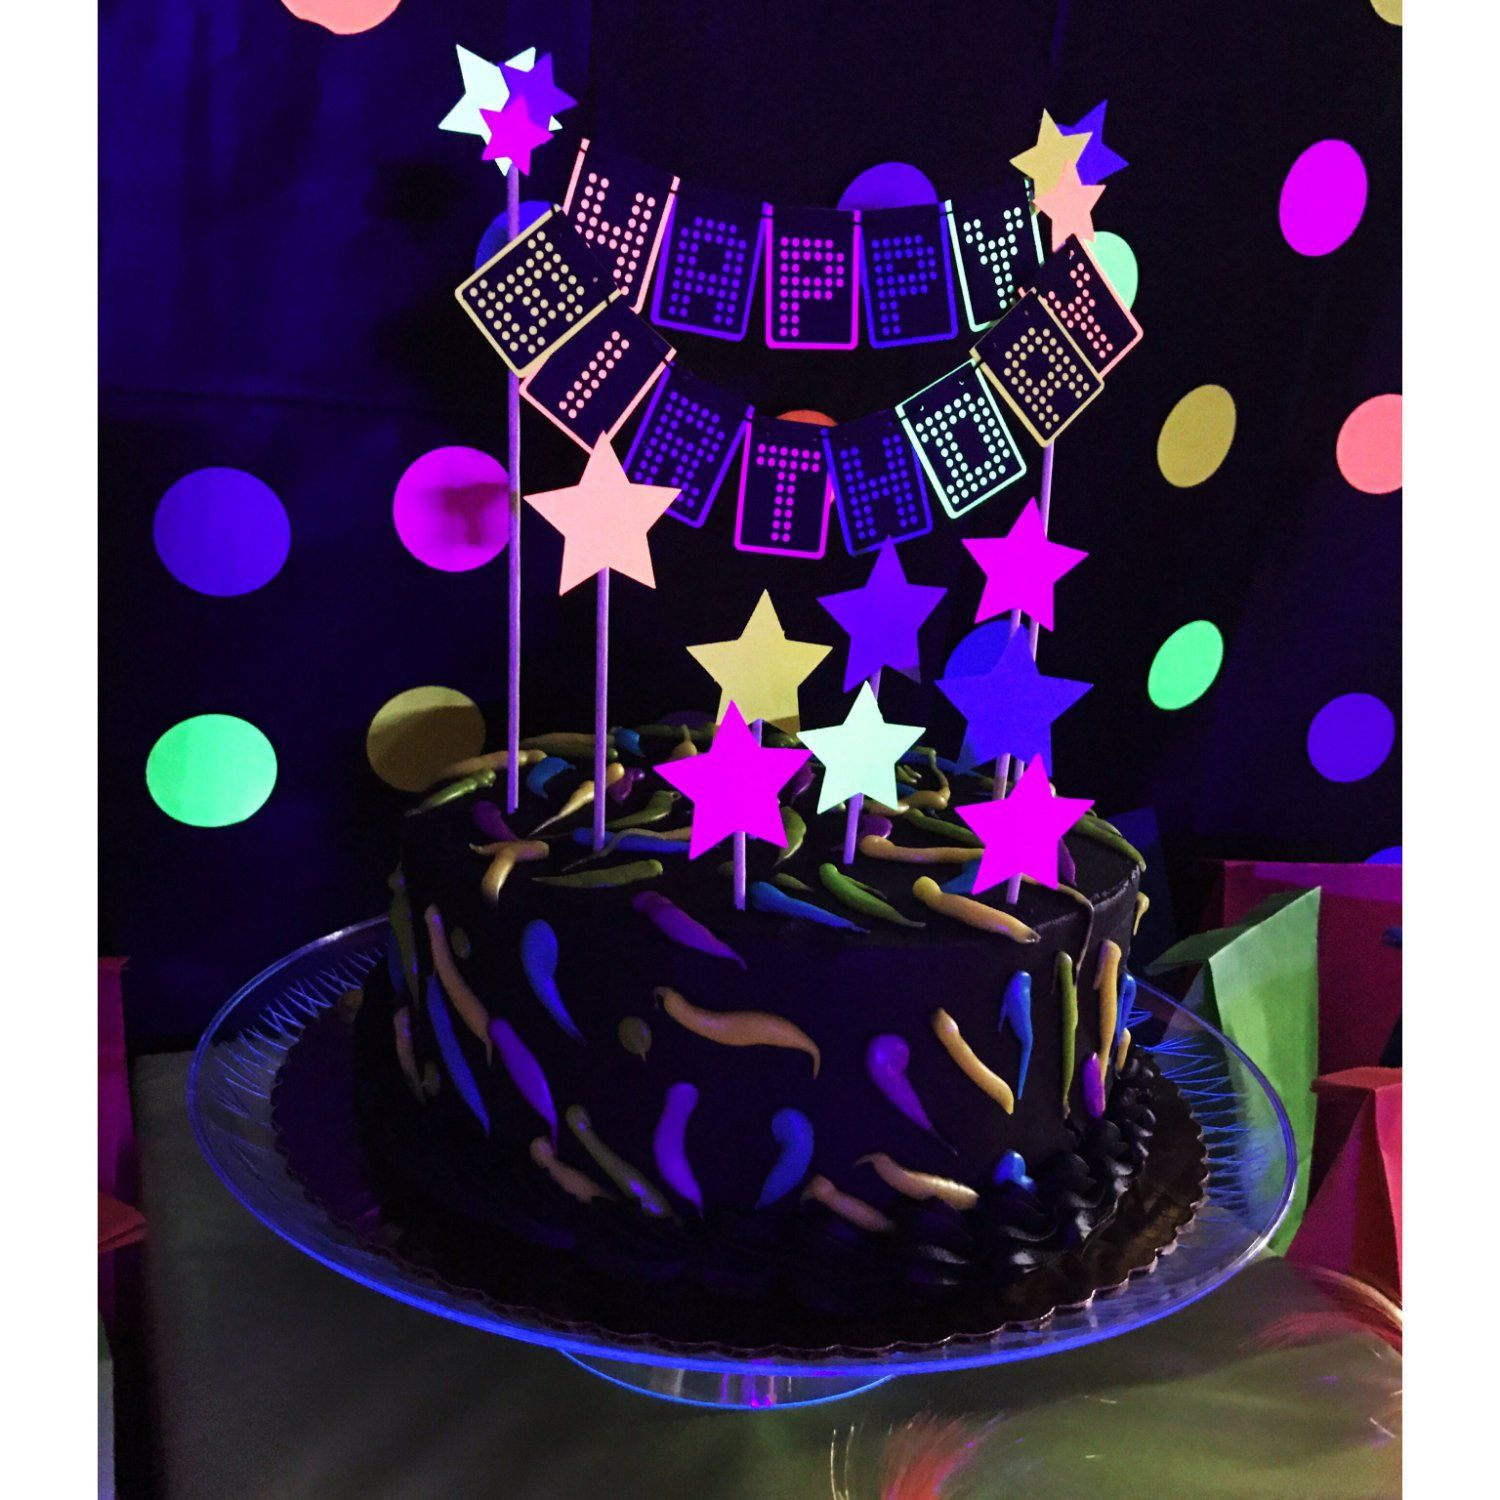 80s Cake Topper Neon Cake Topper Glow Cake Topper Neon Party